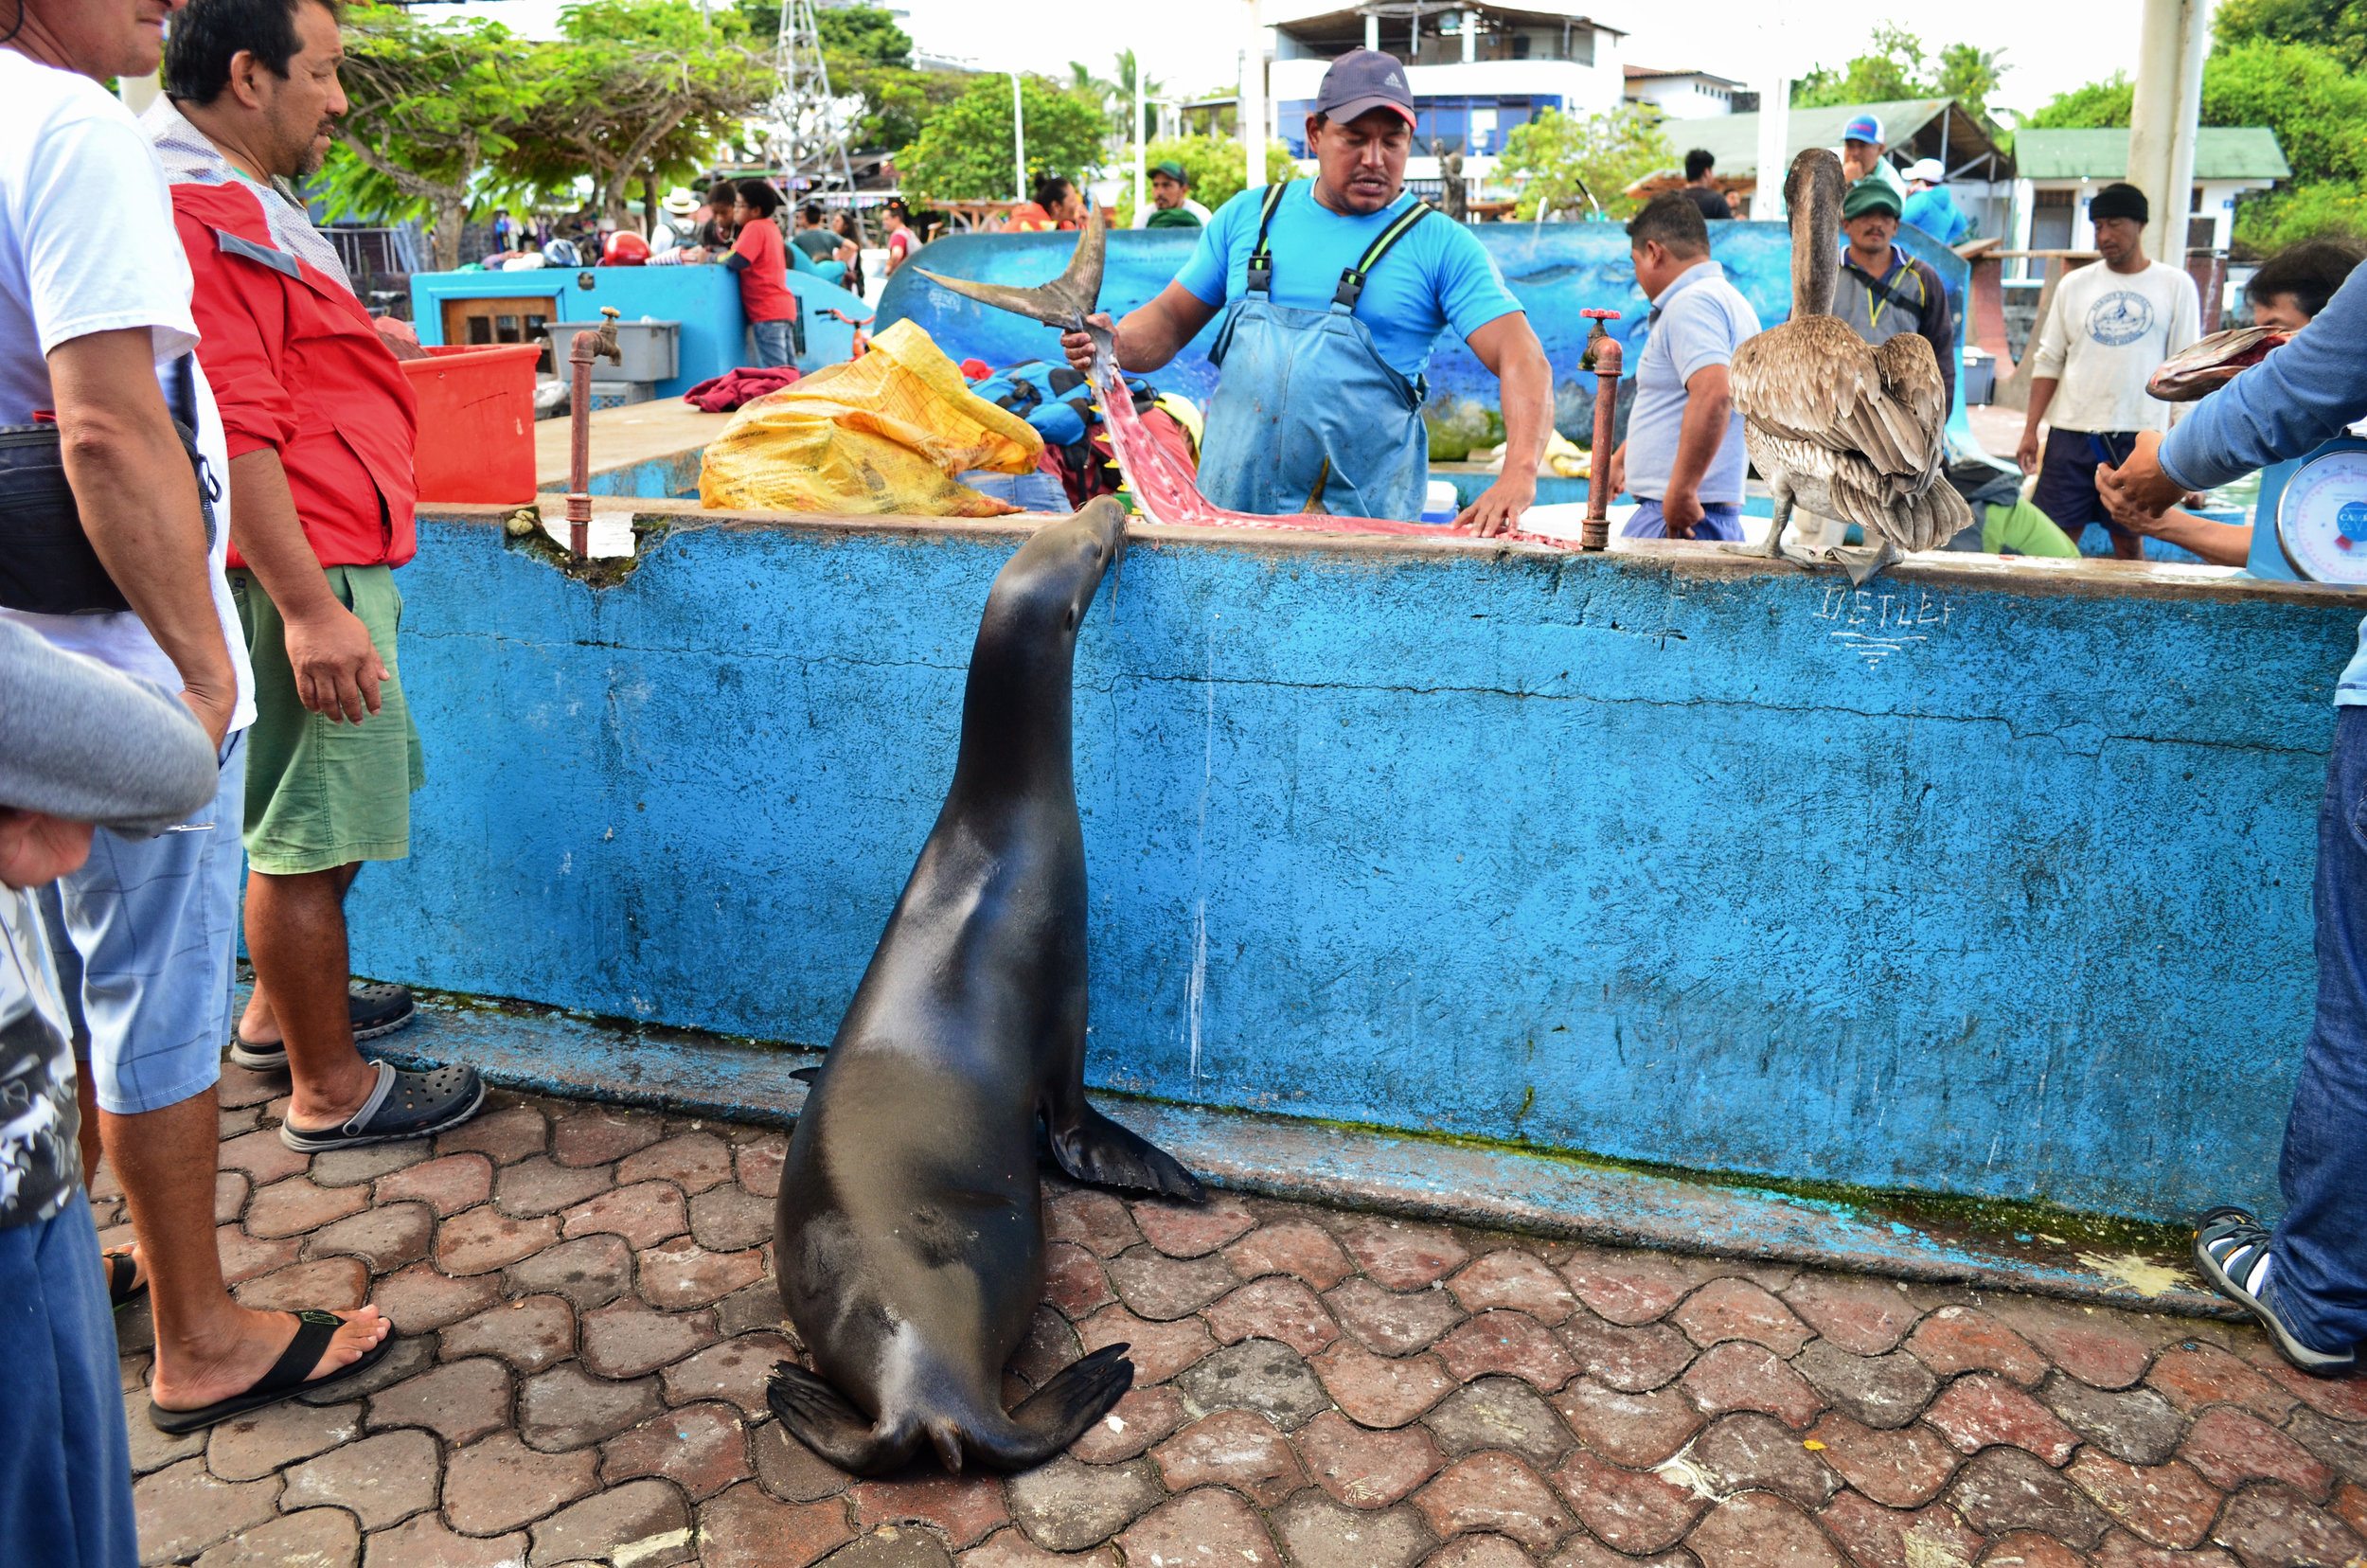 A sea lion scopes out the catch of the day at the fish market on Santa Cruz Island